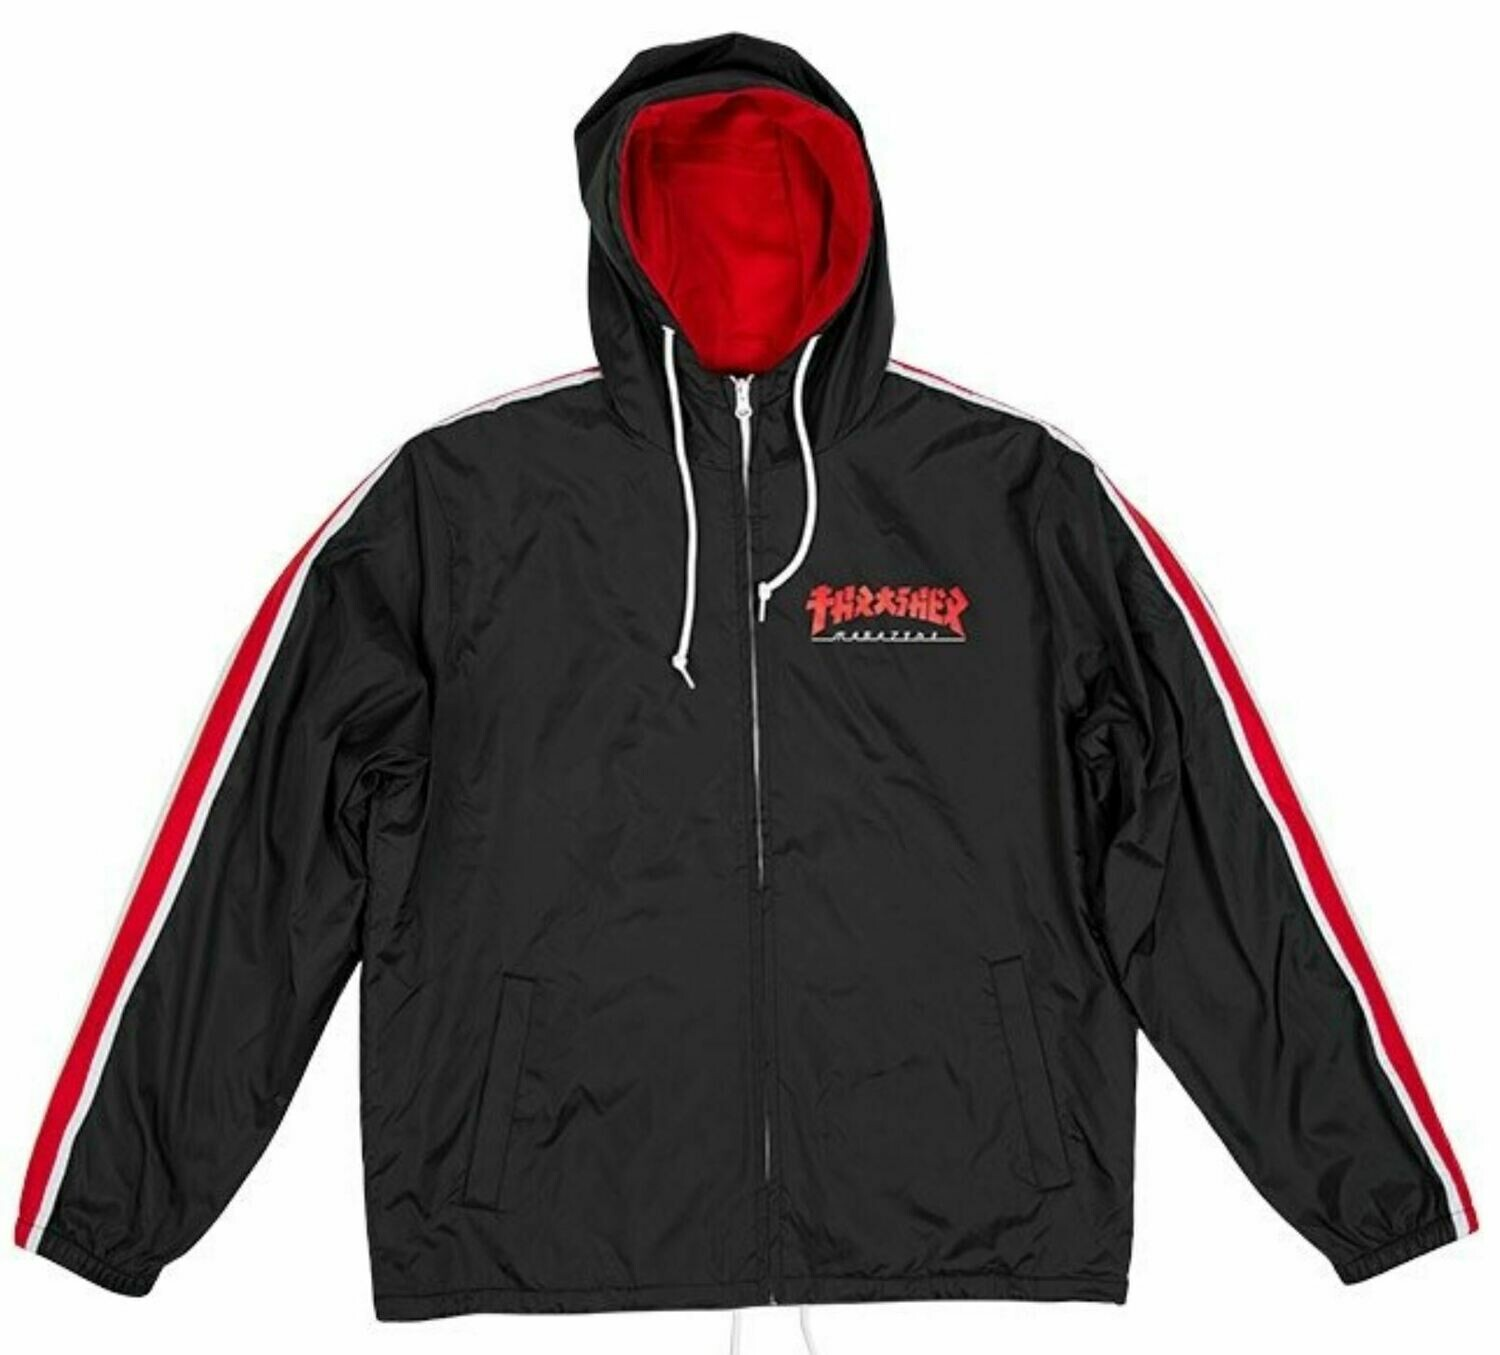 Thrasher Track Jacket